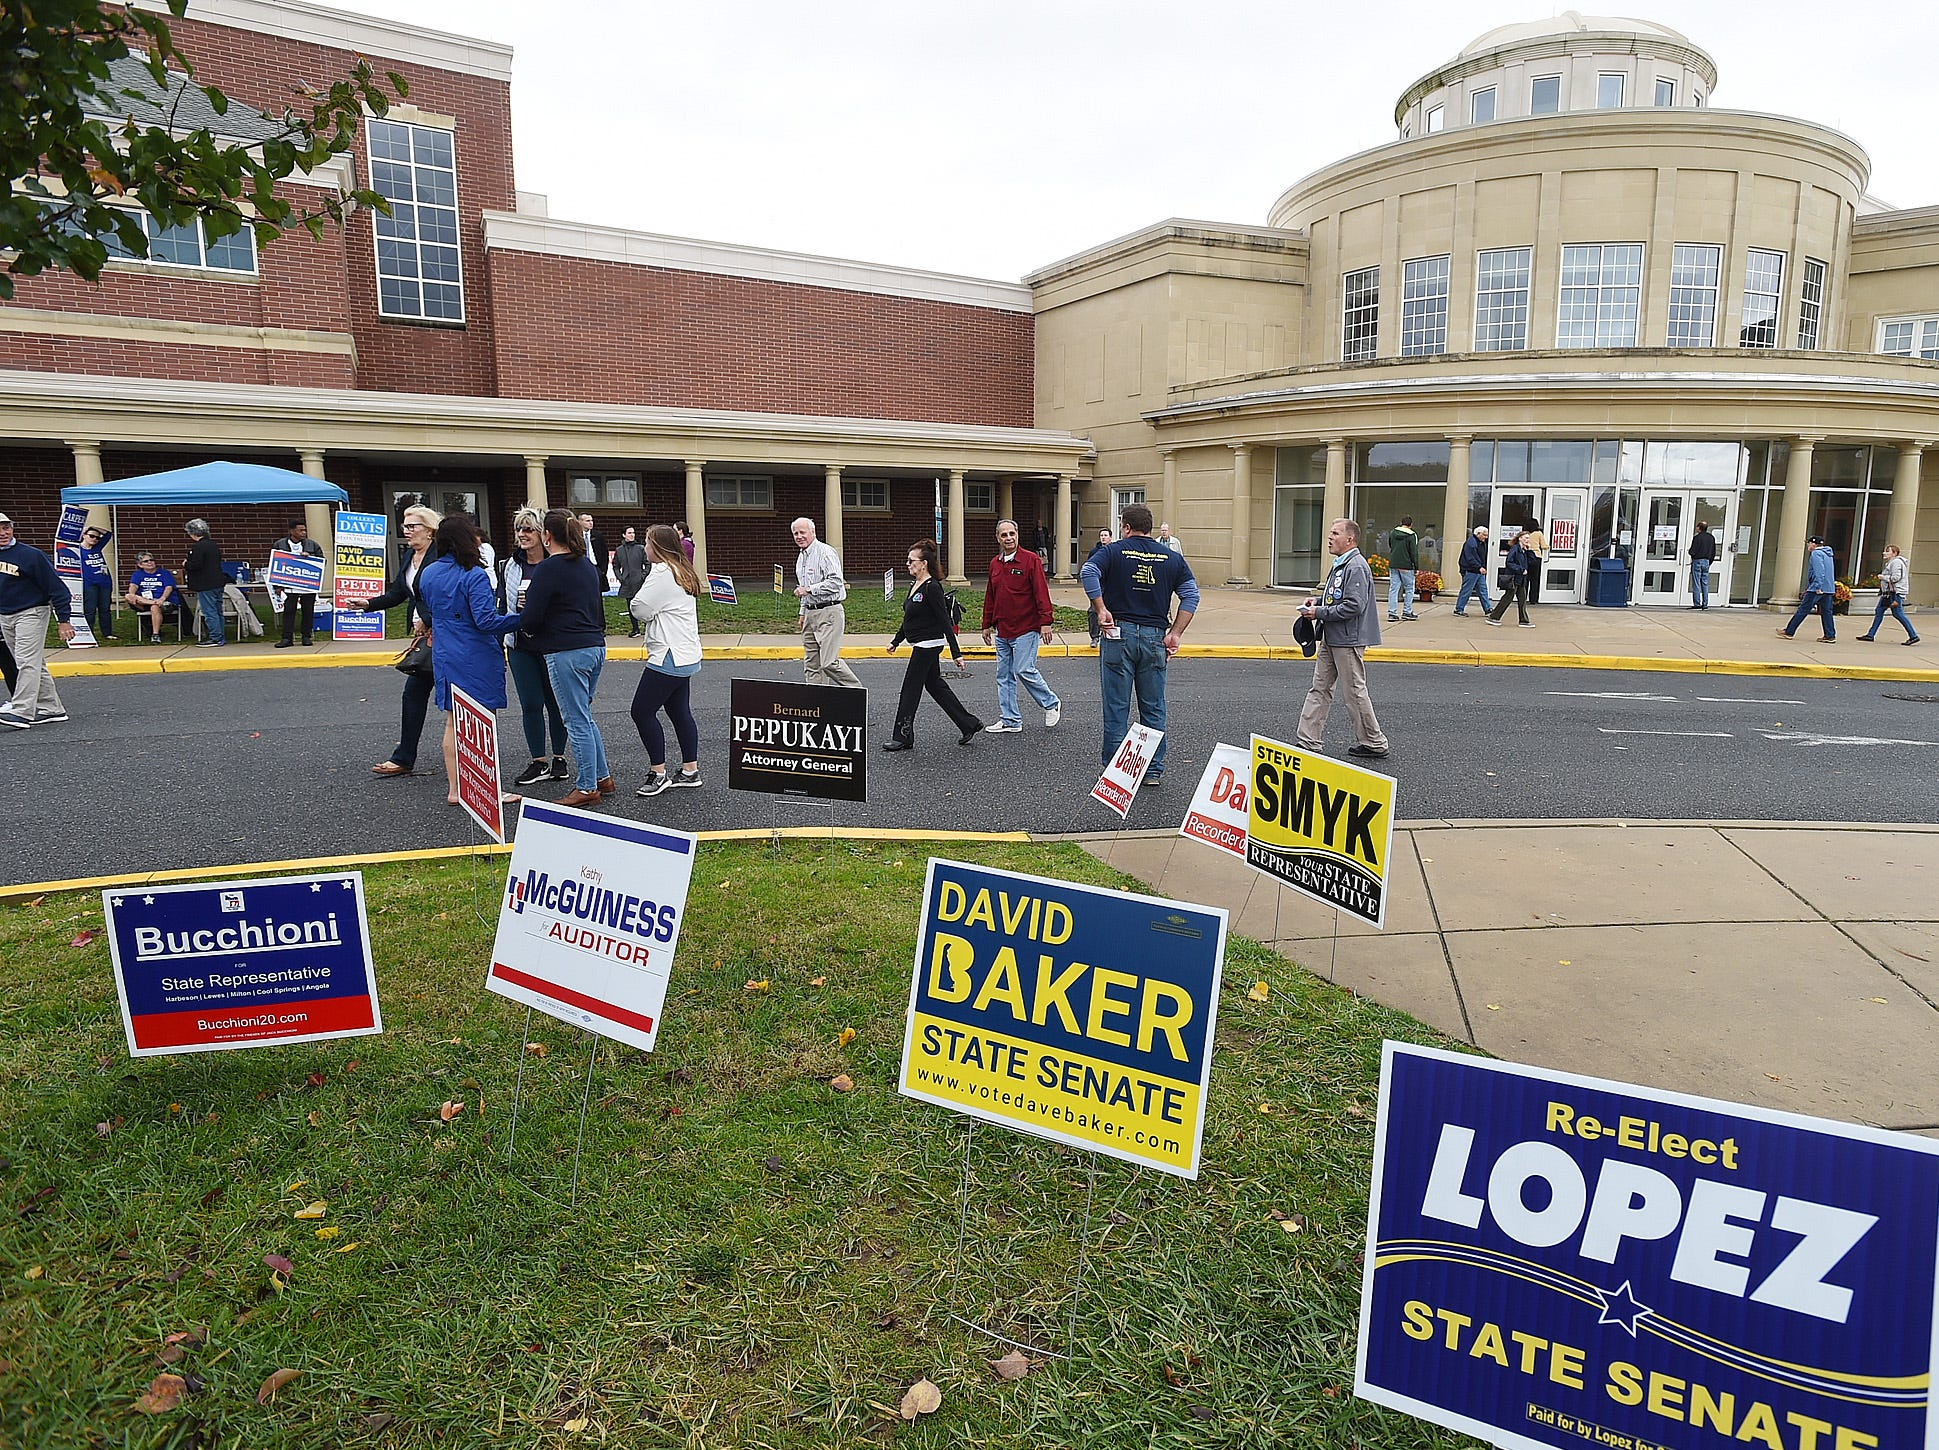 Voters head to the pools at Cape Henlopen High School near Lewes as turnout in eastern Sussex County has been steady at polling places as candidates still seek supporters for their support.